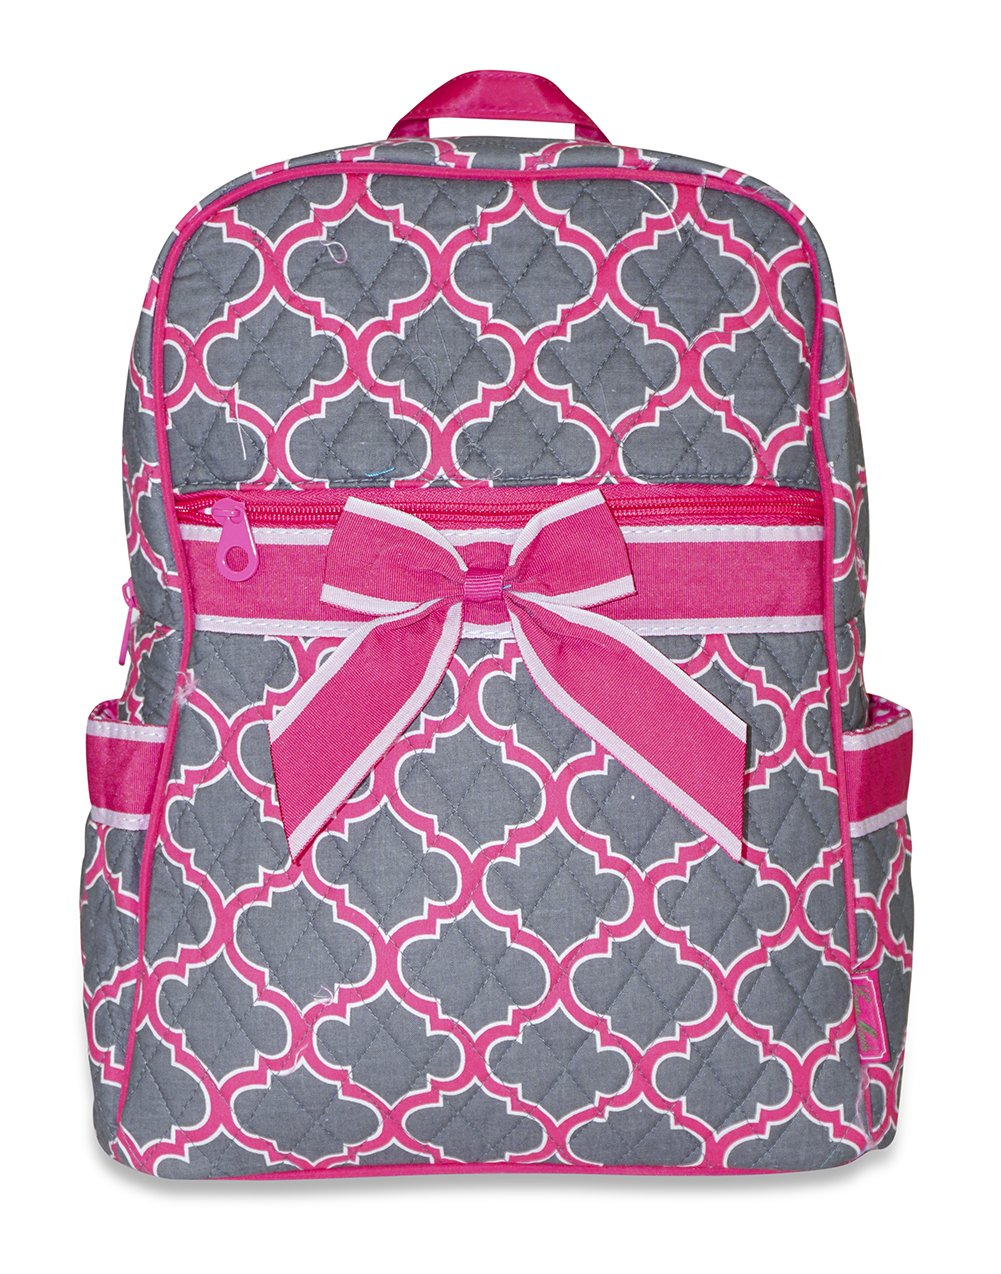 Ever Moda Moroccan Quilted Backpack (Pink)